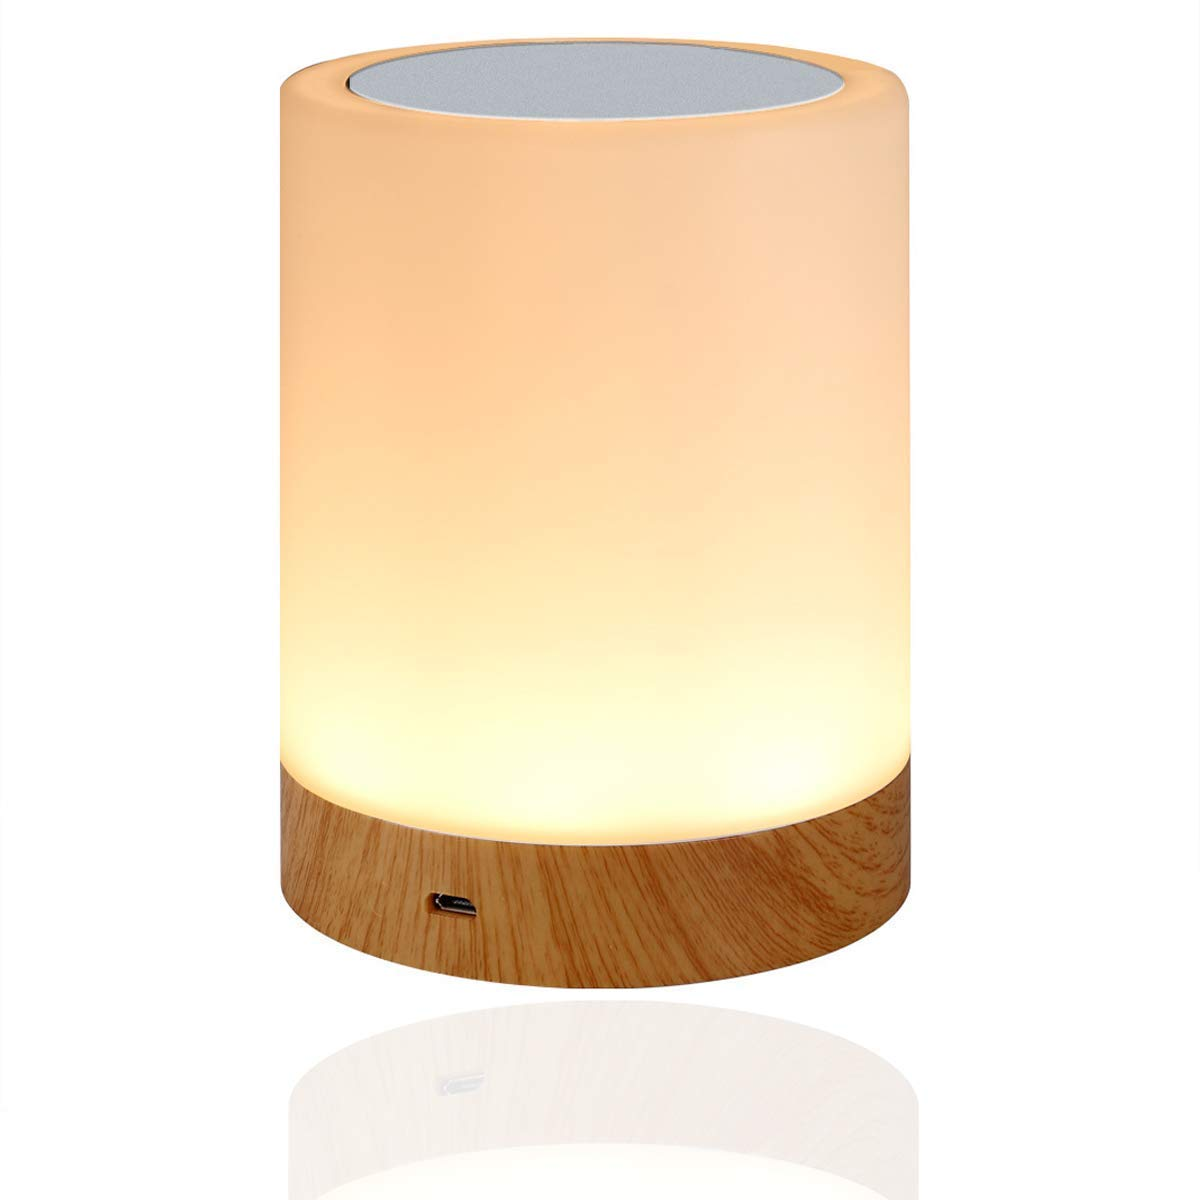 Amouhom Touch Control Lamp, Table Bedside Night Light, Portable LED Light with Dimmable Warm White Light & 6 Different and 16 Gradient Colores Changing